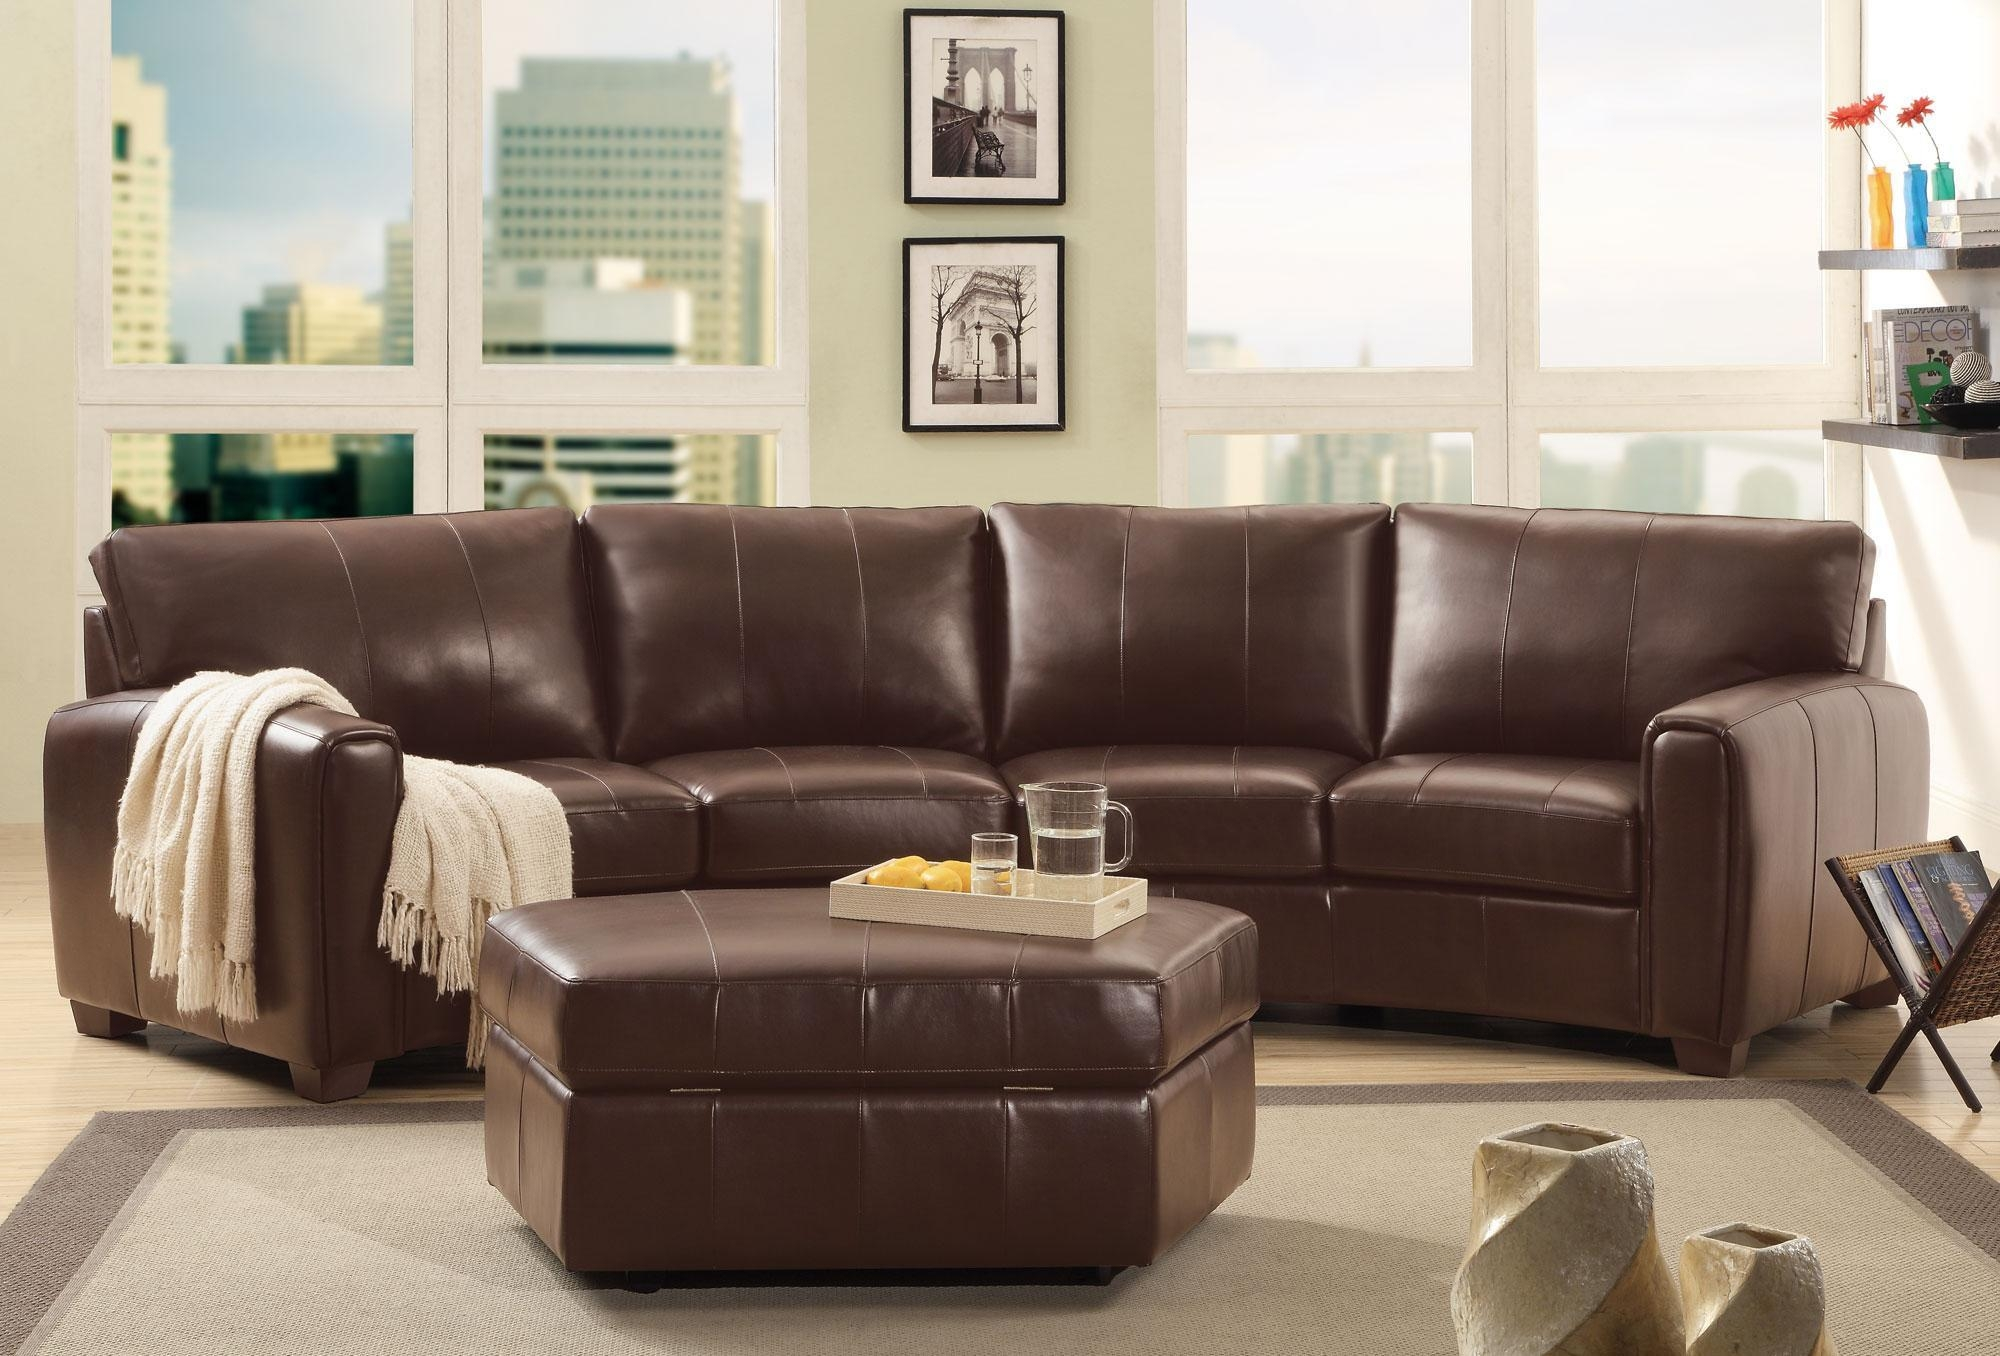 Innovative Curved Leather Sectional Sofa 100 Delta Chocolate Brown Throughout Chocolate Brown Sectional (Image 11 of 15)